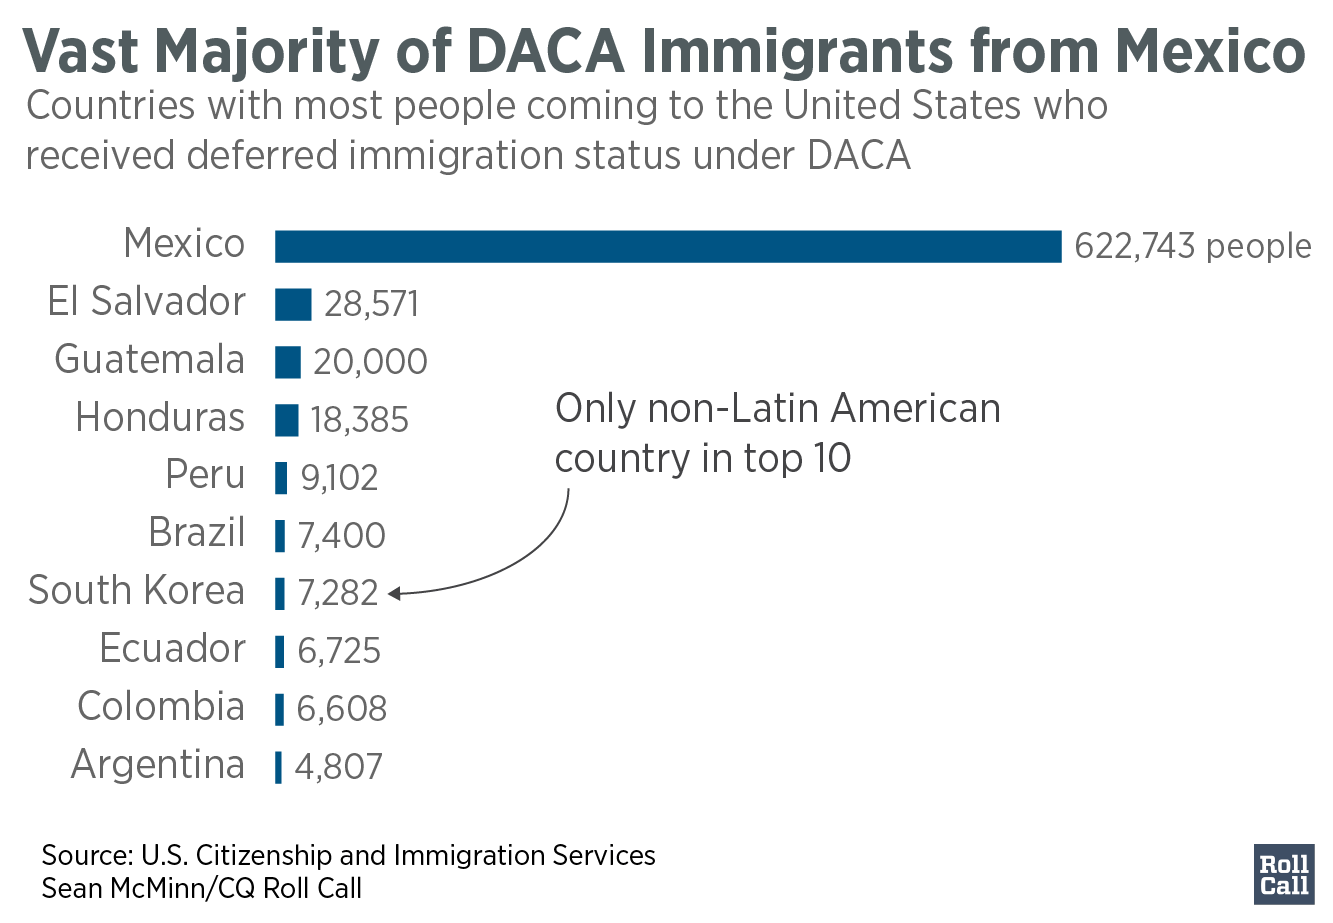 q3Vast_Majority_of_DACA_Immigrants_from_Mexico_Approved_to_Date2_Initials_chartbuilder (1)-01